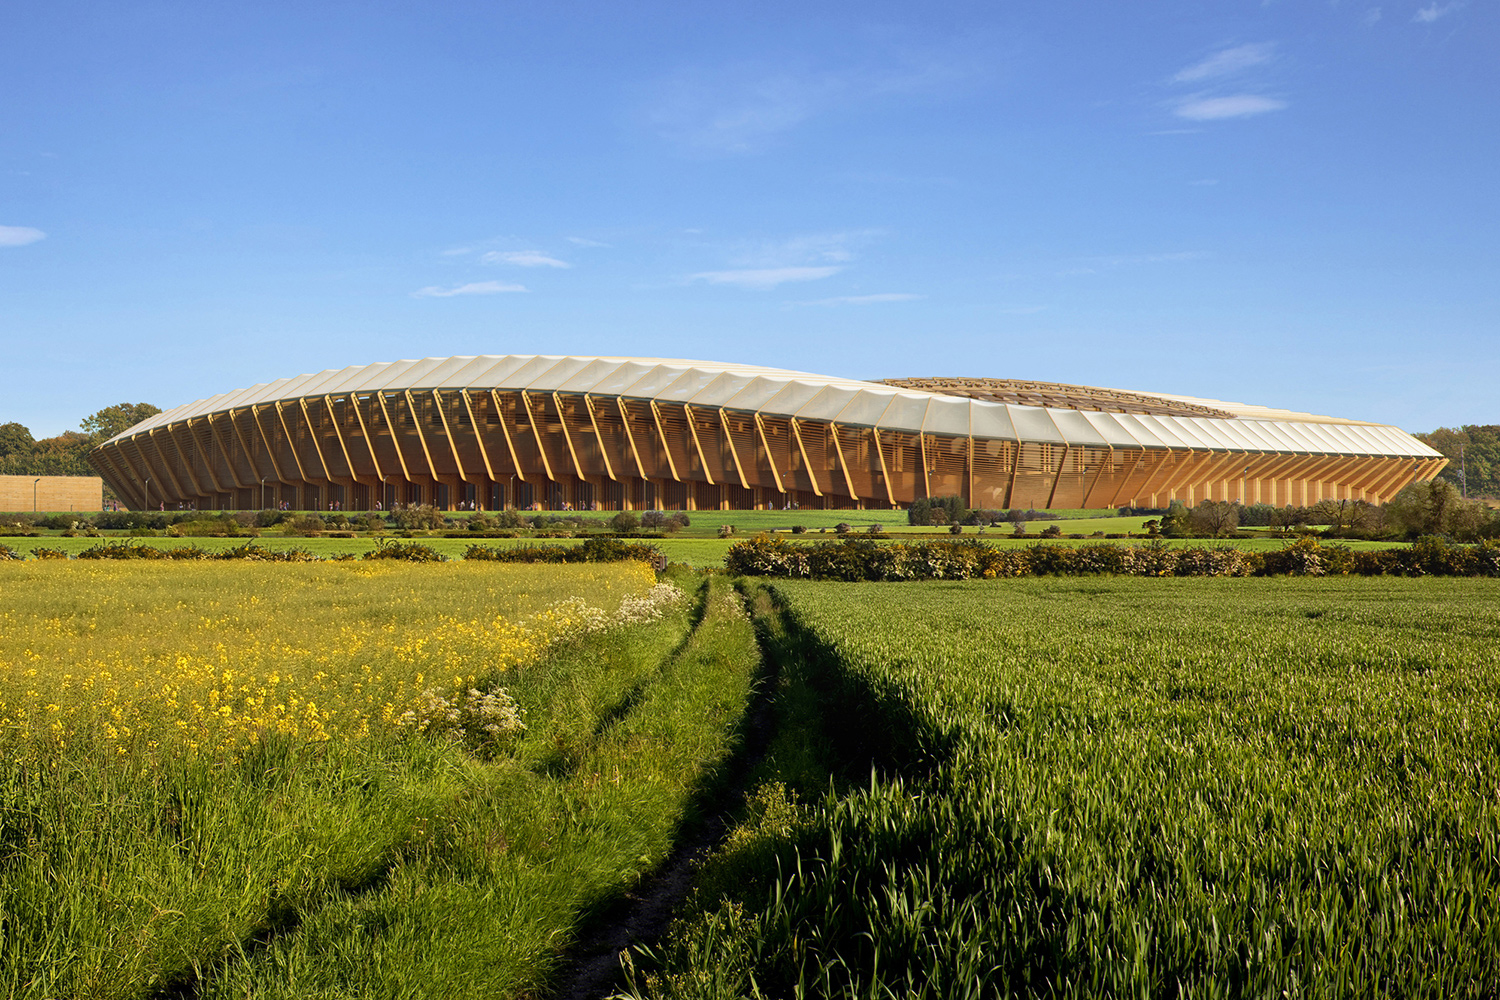 zaha-hadid-architects-wooden-football-stadium-01.jpg